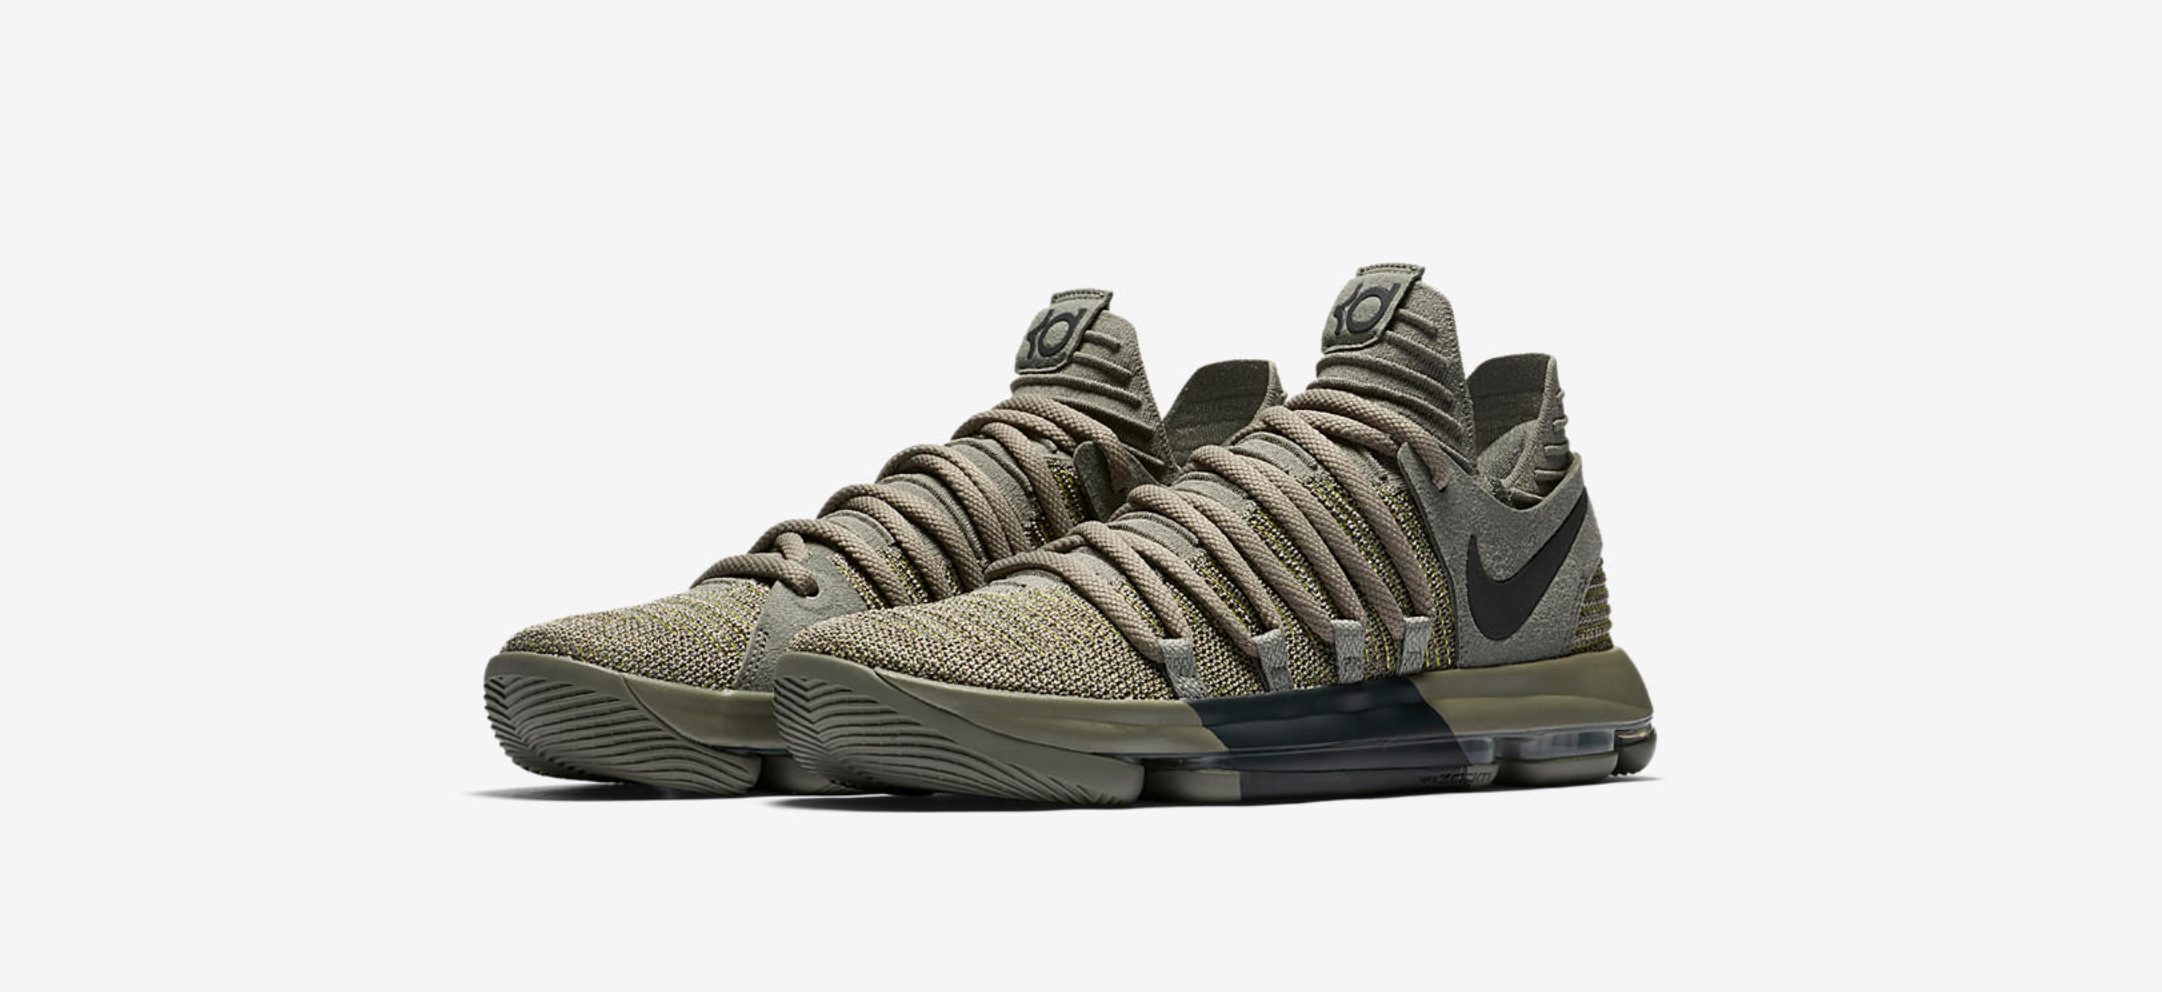 d790126caa94 ... discount code for nike kd 10 veterans day 3 9c947 2bda5